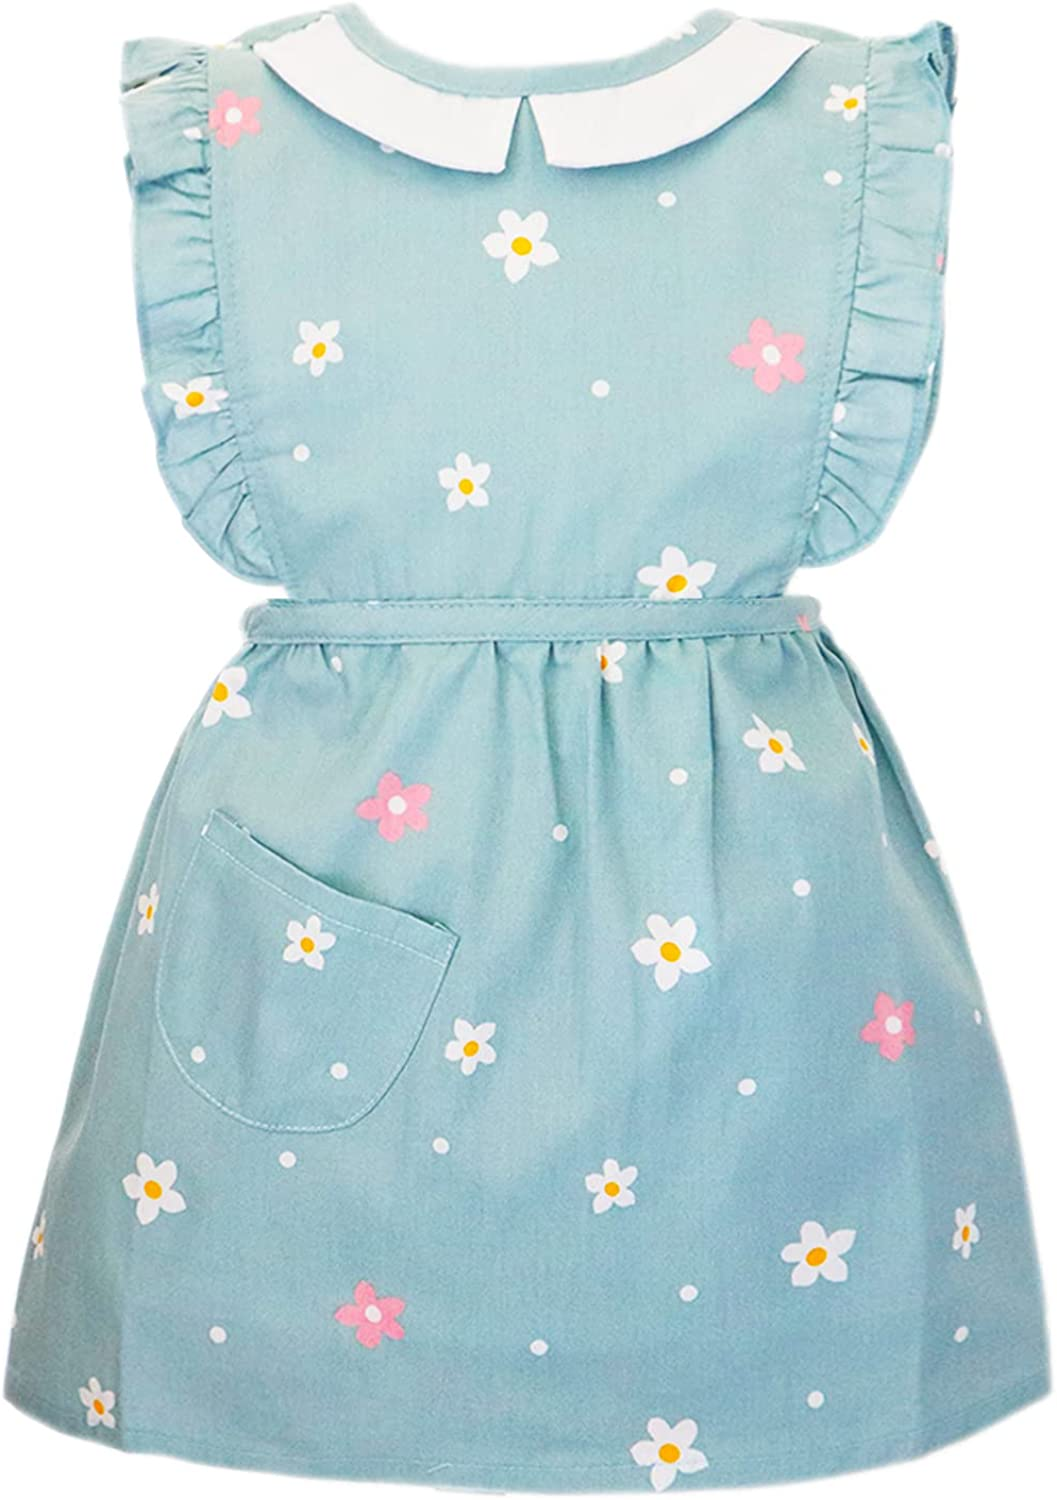 Cute Girls Floral Skirt Kids Apron with Waterproof Lining for Painting Baking Kitchen Apron Aged 6M-4Y